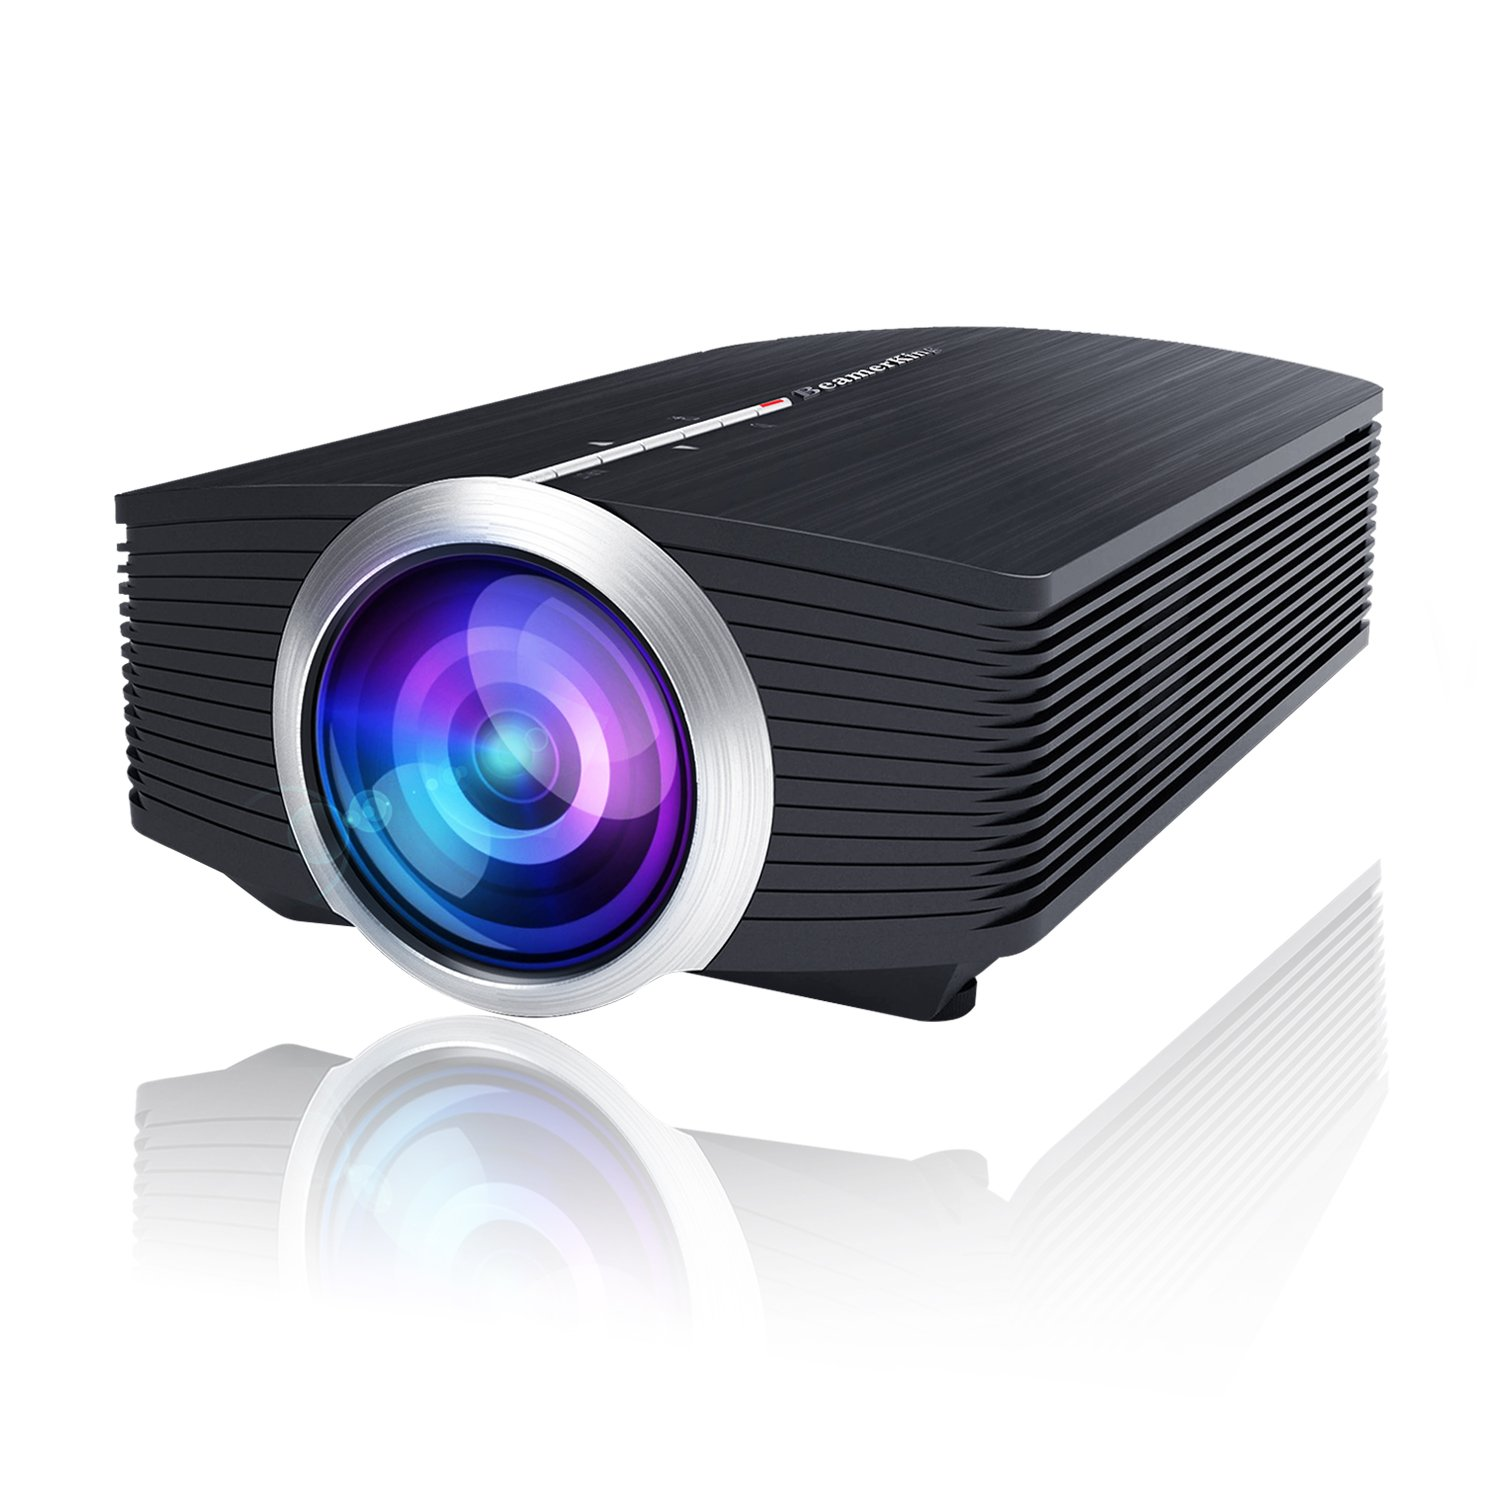 BeamerKing WS510 Video Projector 1800 Lumens Portable Movie Projectors with Stereo Speaker Support 1080P Full HD to PS4 Xbox PC Laptop USB Smartphone for Gaming Parties Home Cinema Movies